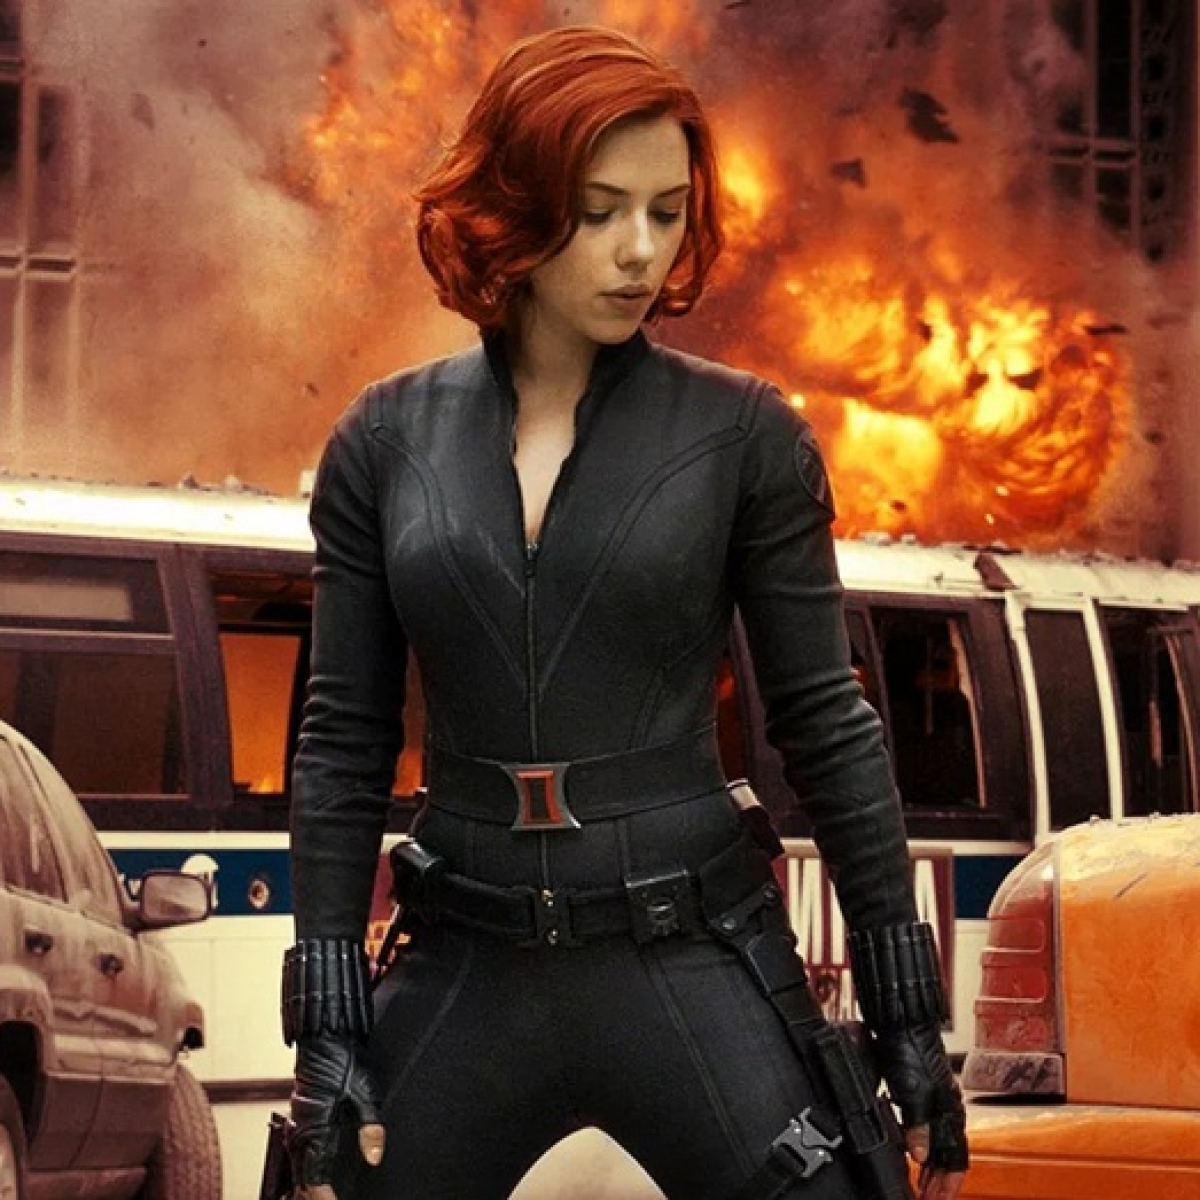 Scarlett Johansson's 'Black Widow' to release in India on April 30, 2020